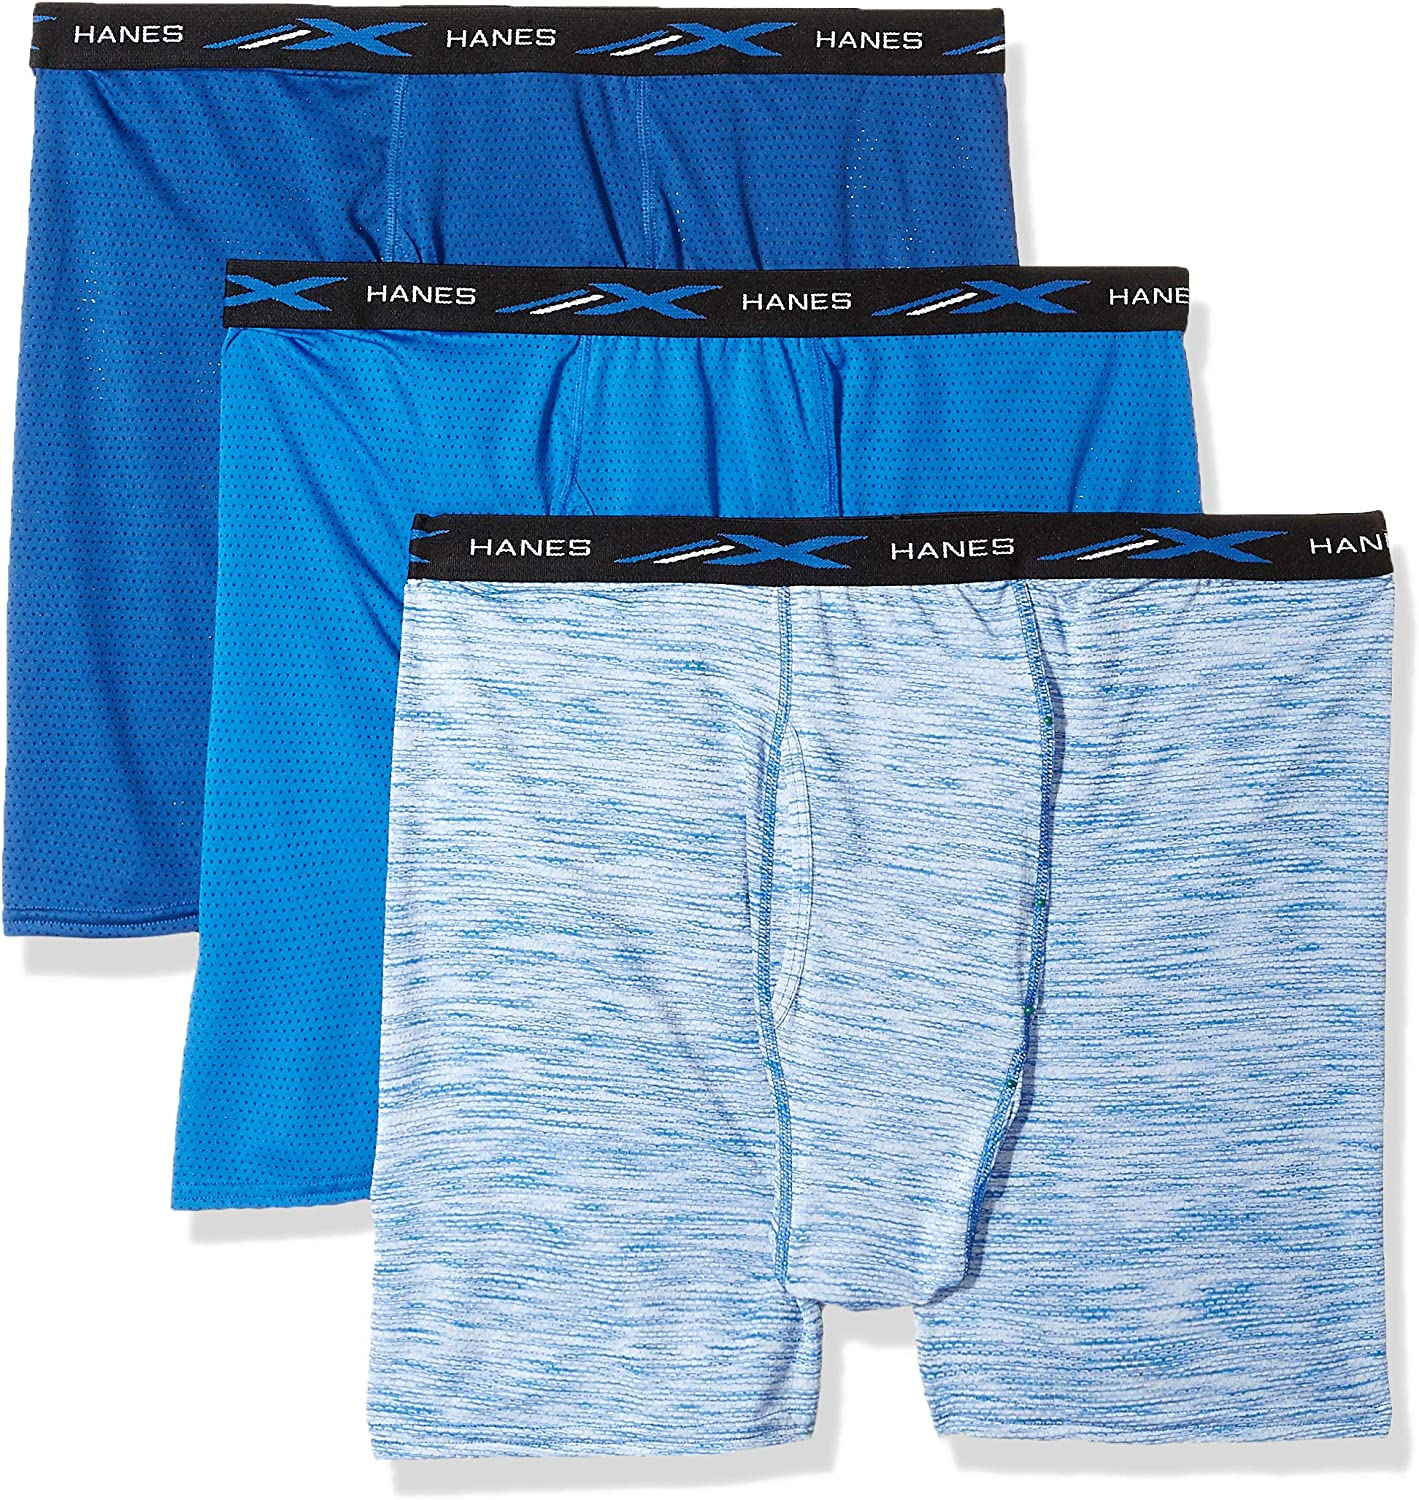 Hanes Mens X-Temp Lightweight Mesh Space Dye Boxer Brief 4-Pack assorted colors mat vary